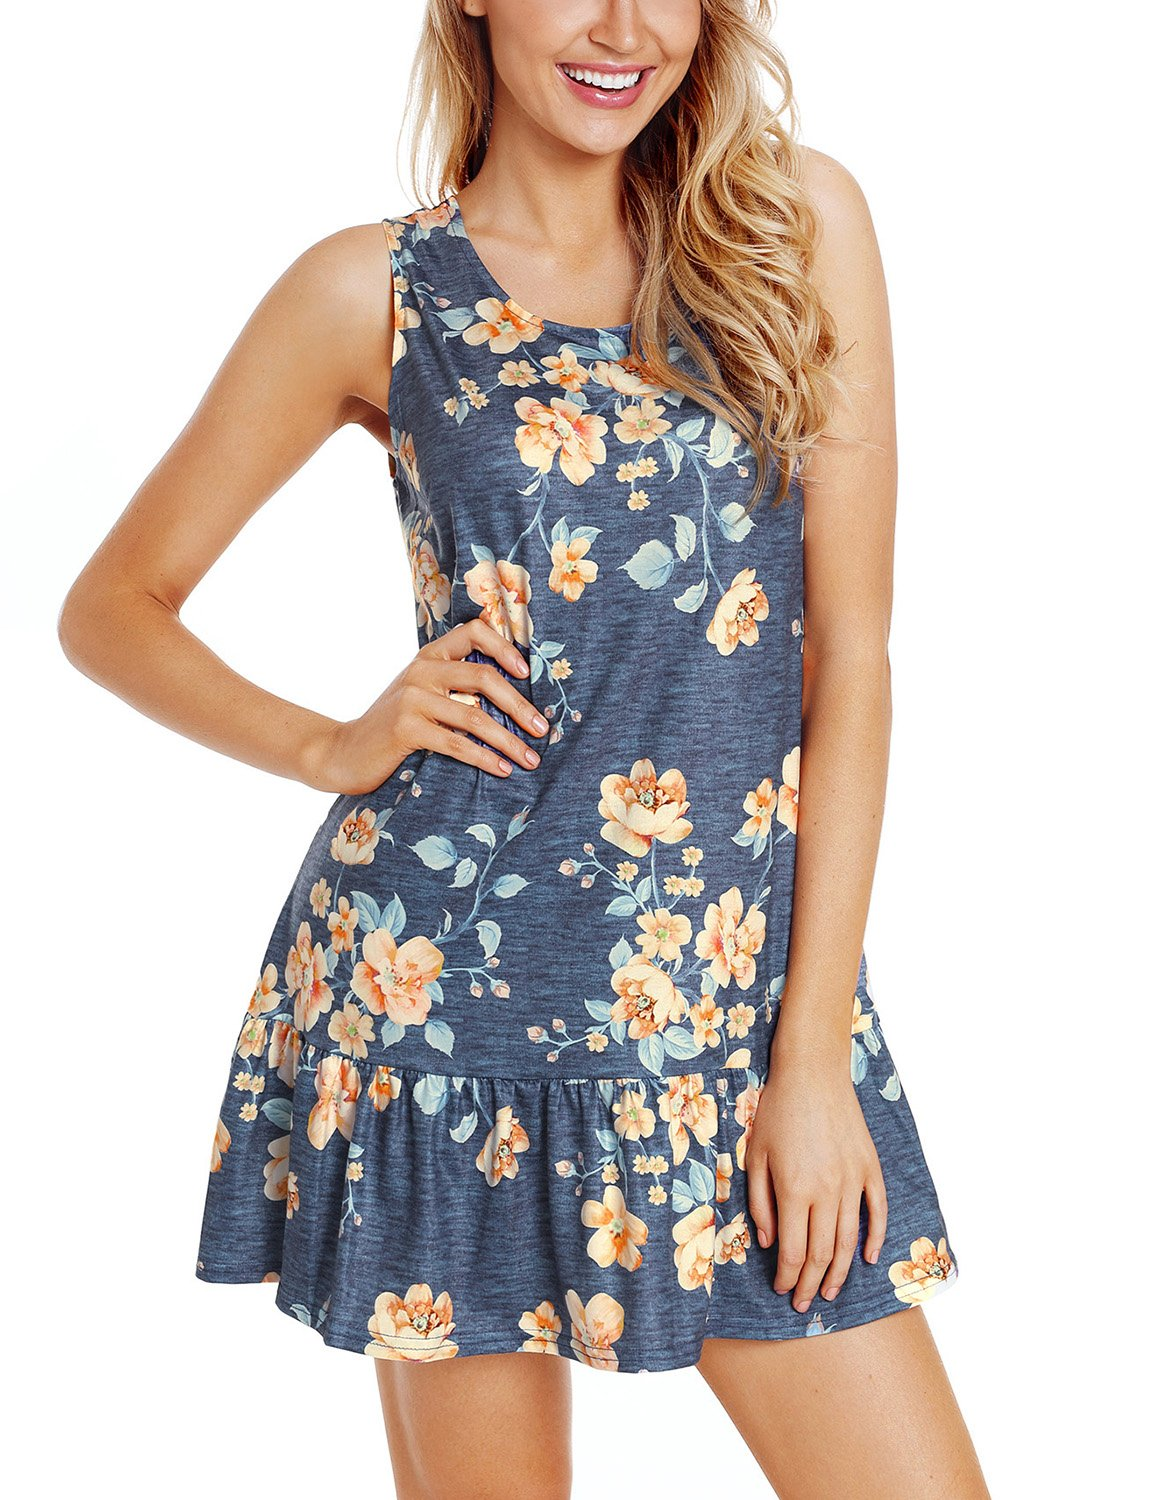 Utyful Women's Summer Casual Navy Floral Printed Sleeveless Ruffled Dress Short Shift Tank Back Crisscross Sundress Size S